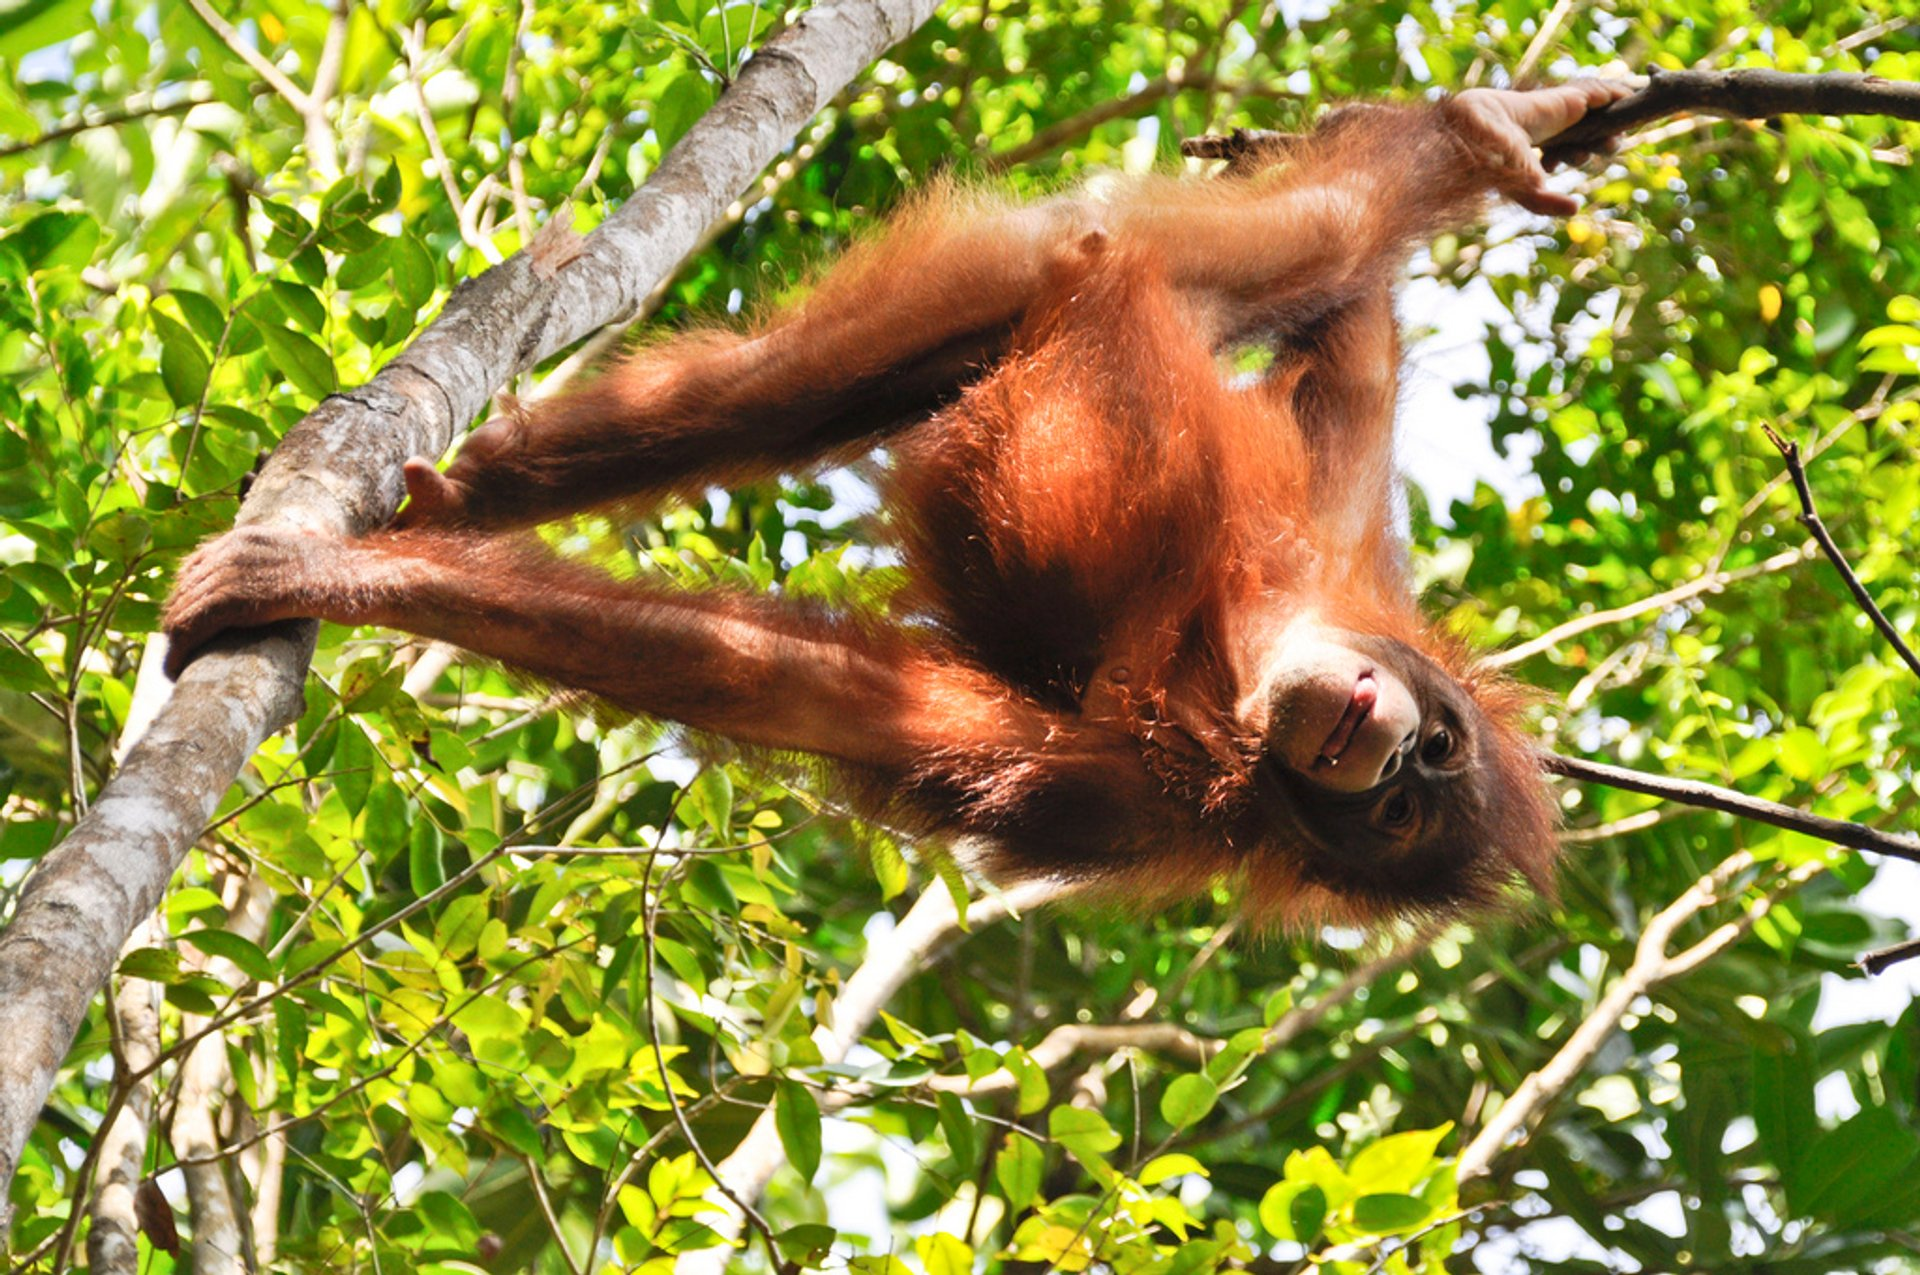 Watching Orangutans in Malaysia 2019 - Best Time